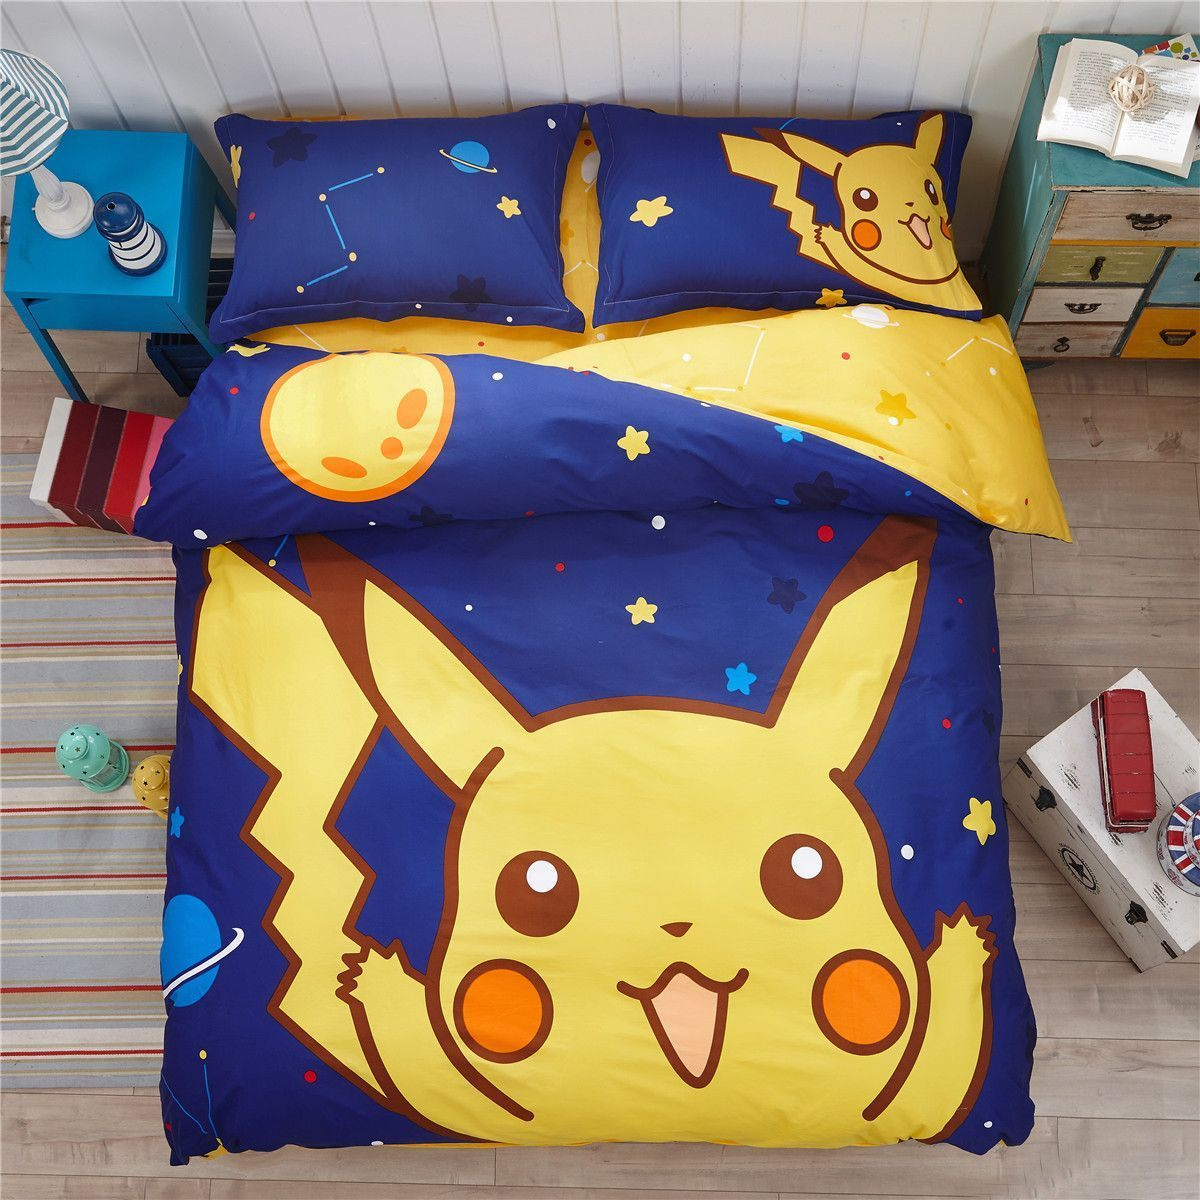 Lit Enfant Complet Joli 3d Bedding Set Pillow Sham Pokemon Cartoon Christmas Gift Kids